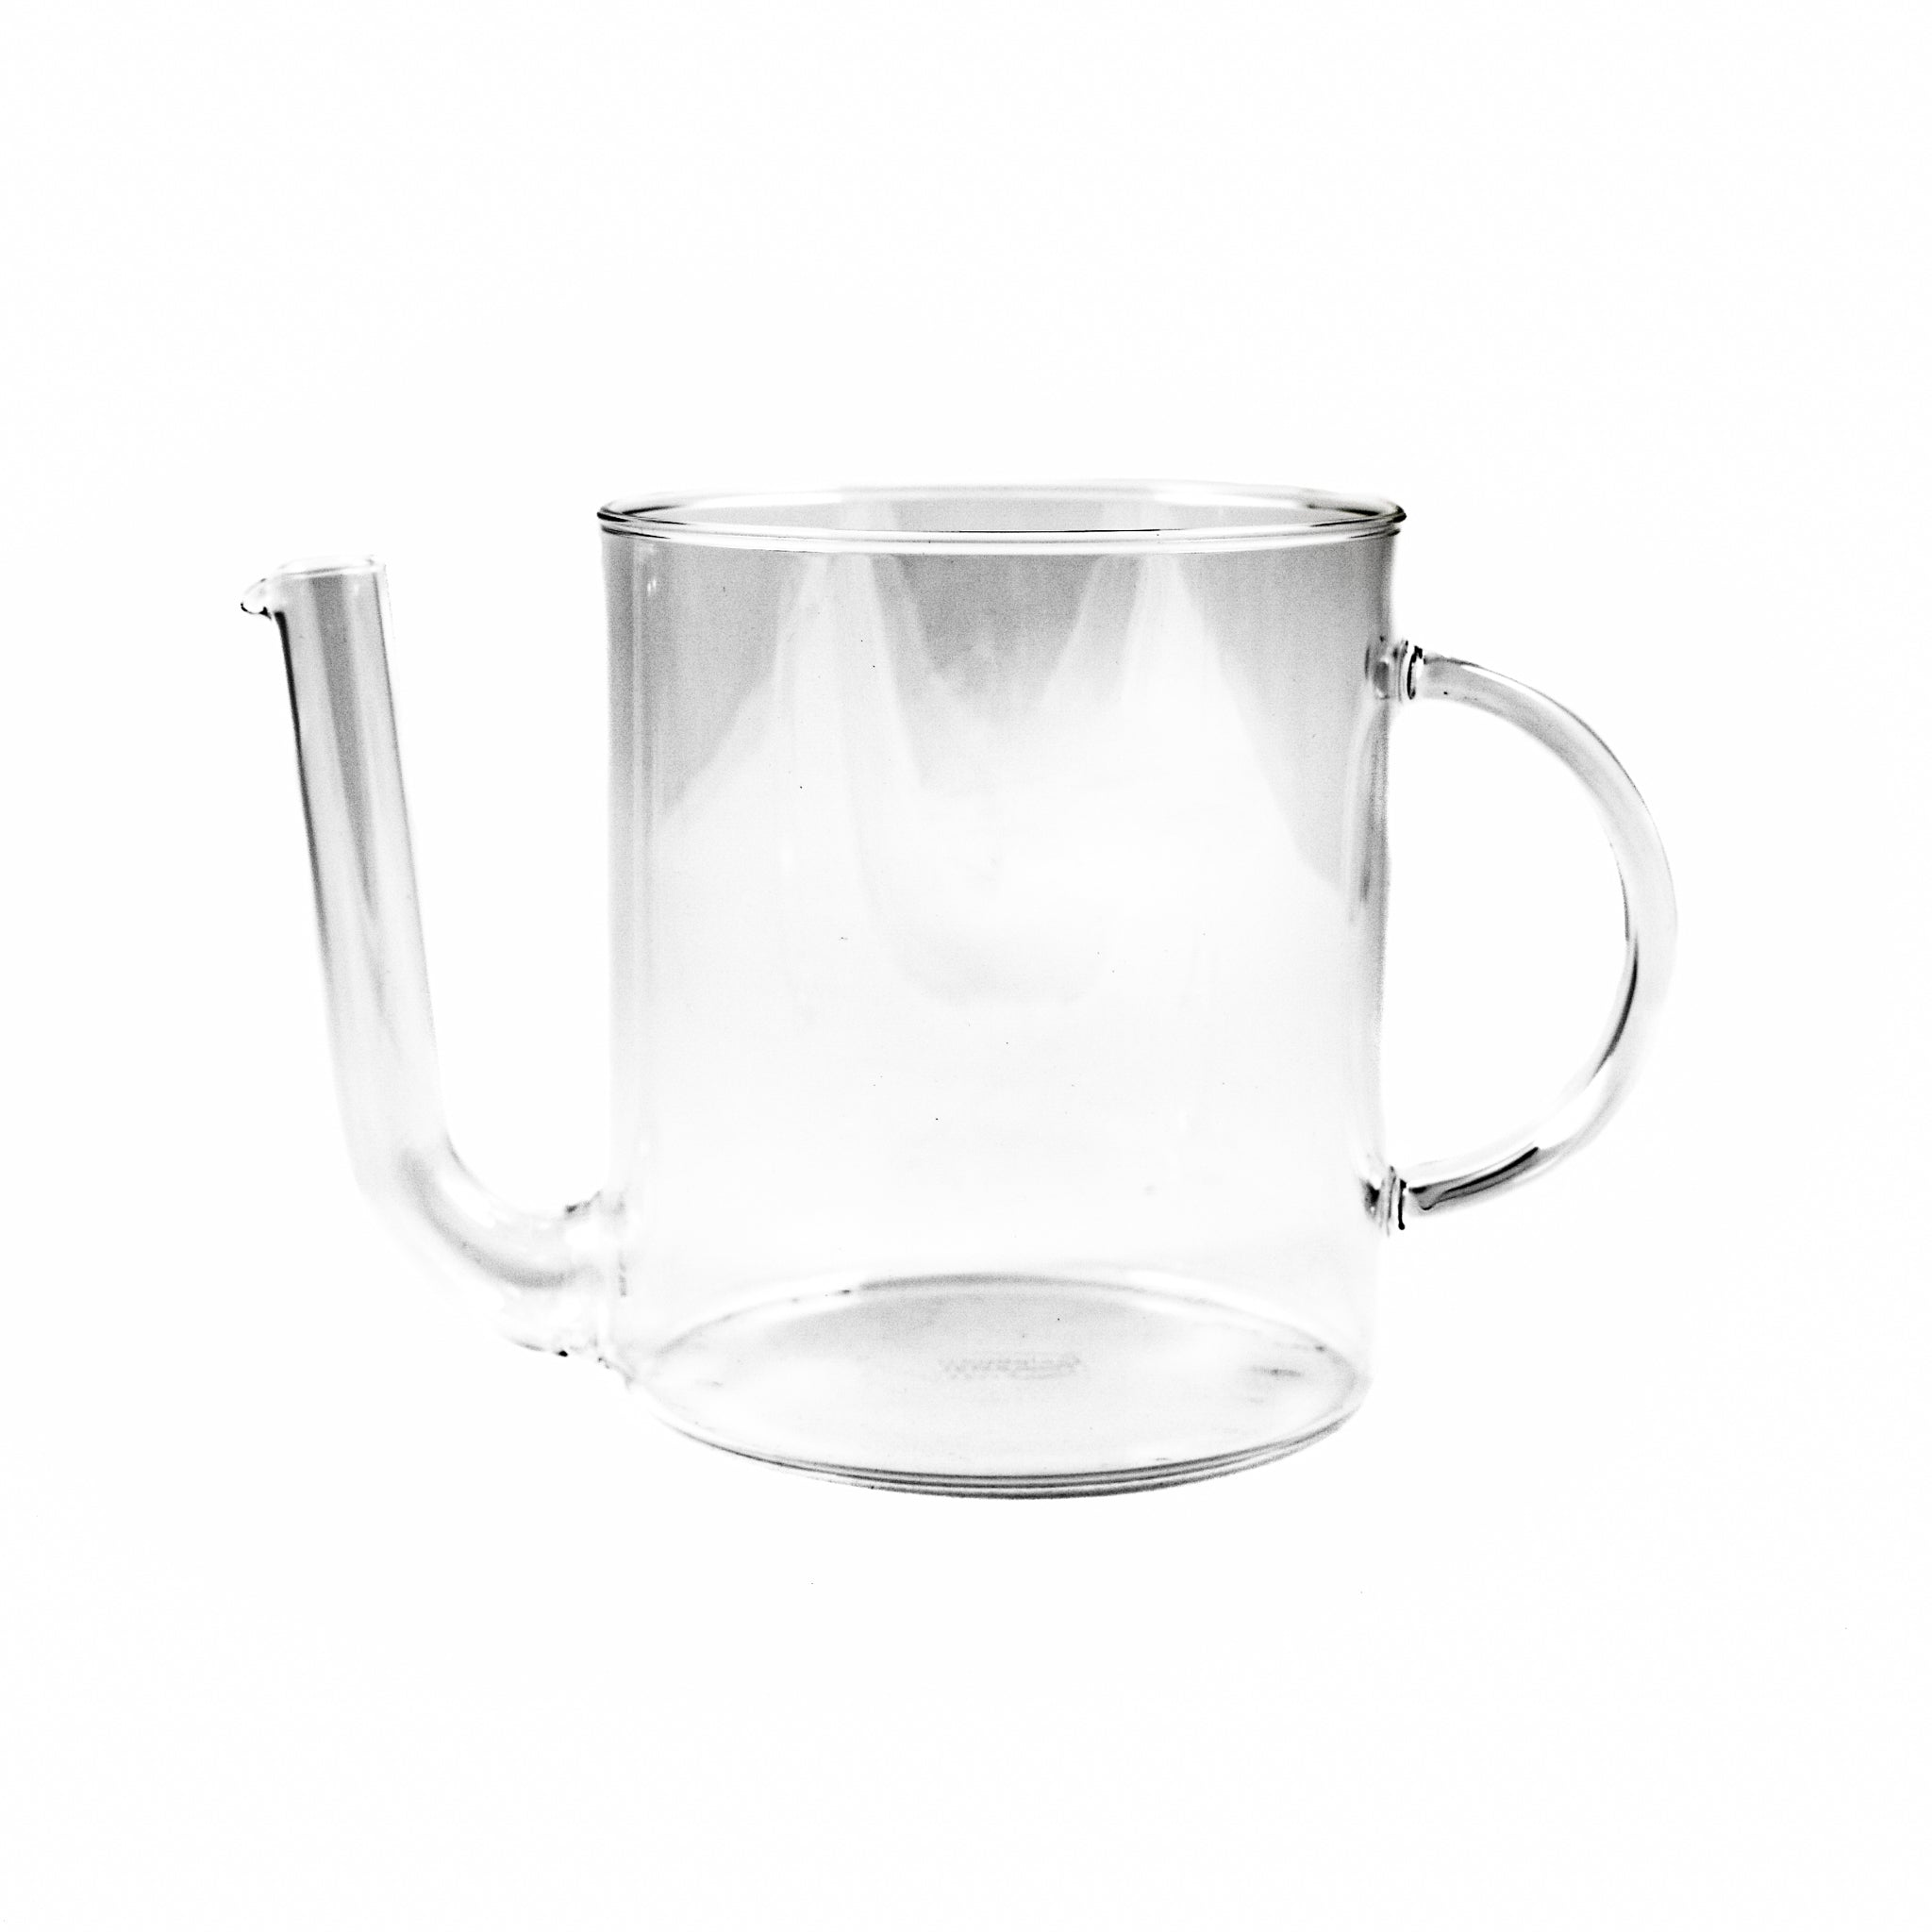 Glass Gravy Fat Separator